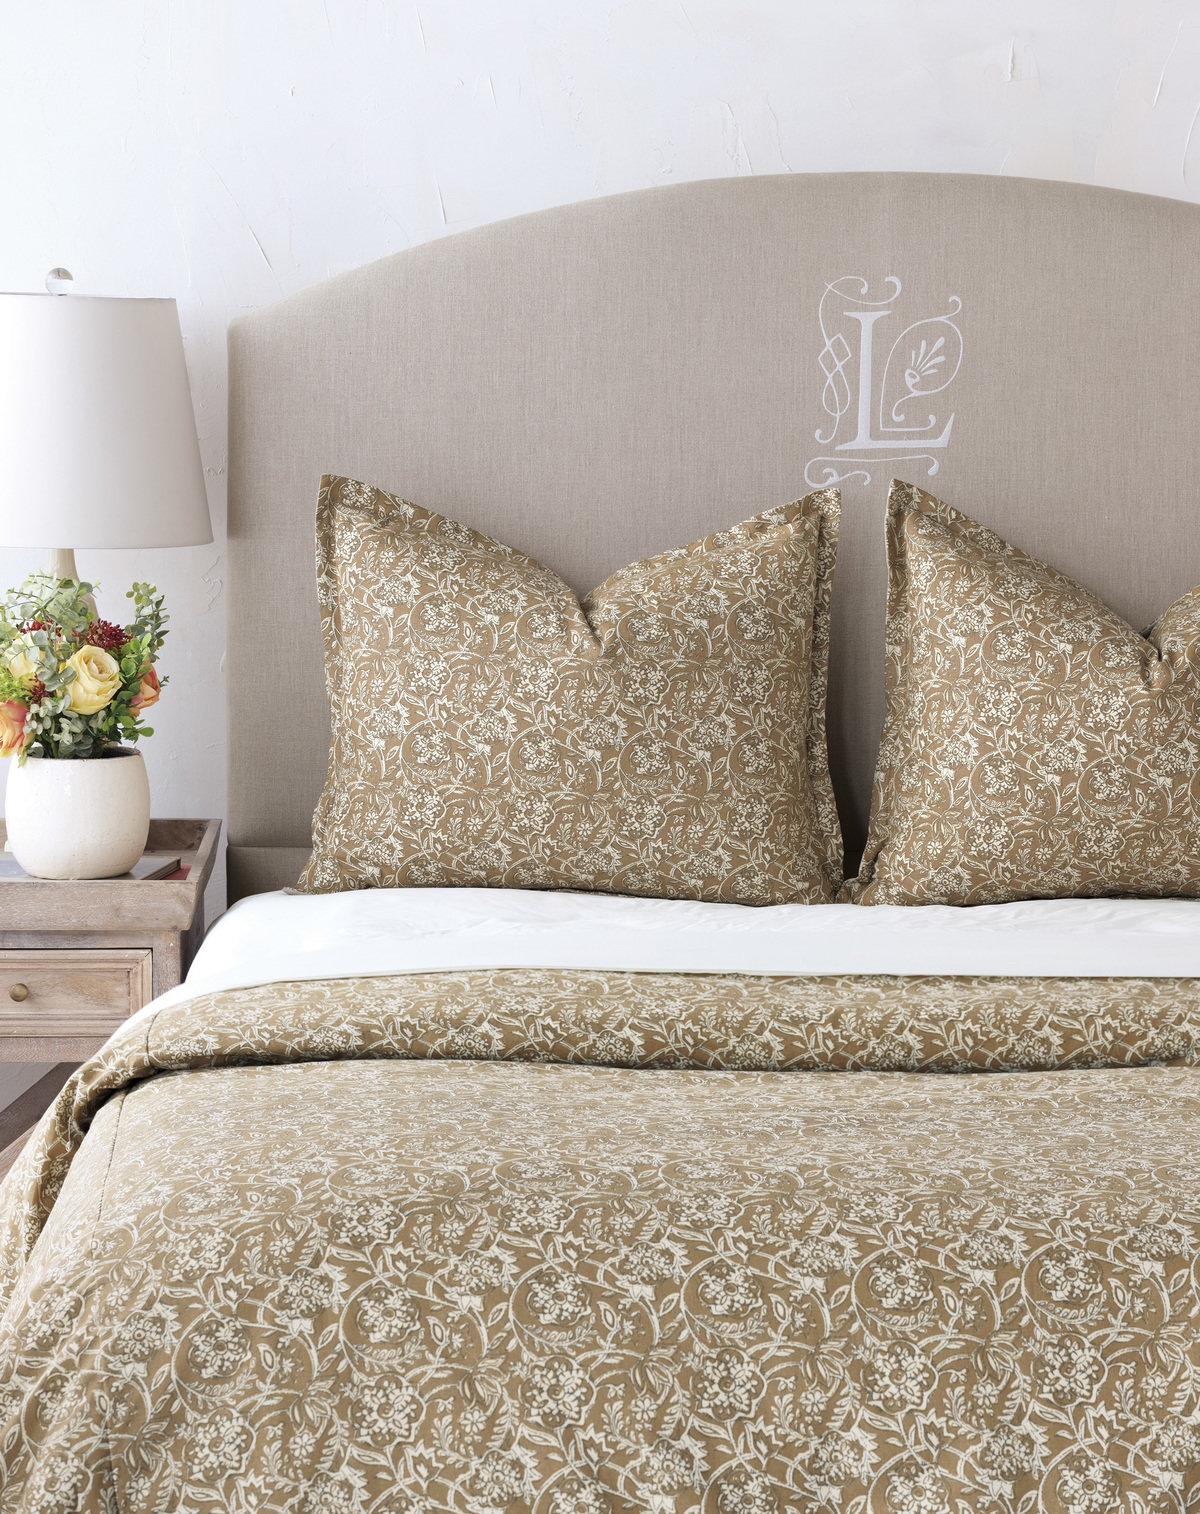 Alexa hampton eastern accent bedding taj taj standard pillow 1200 xxx q85